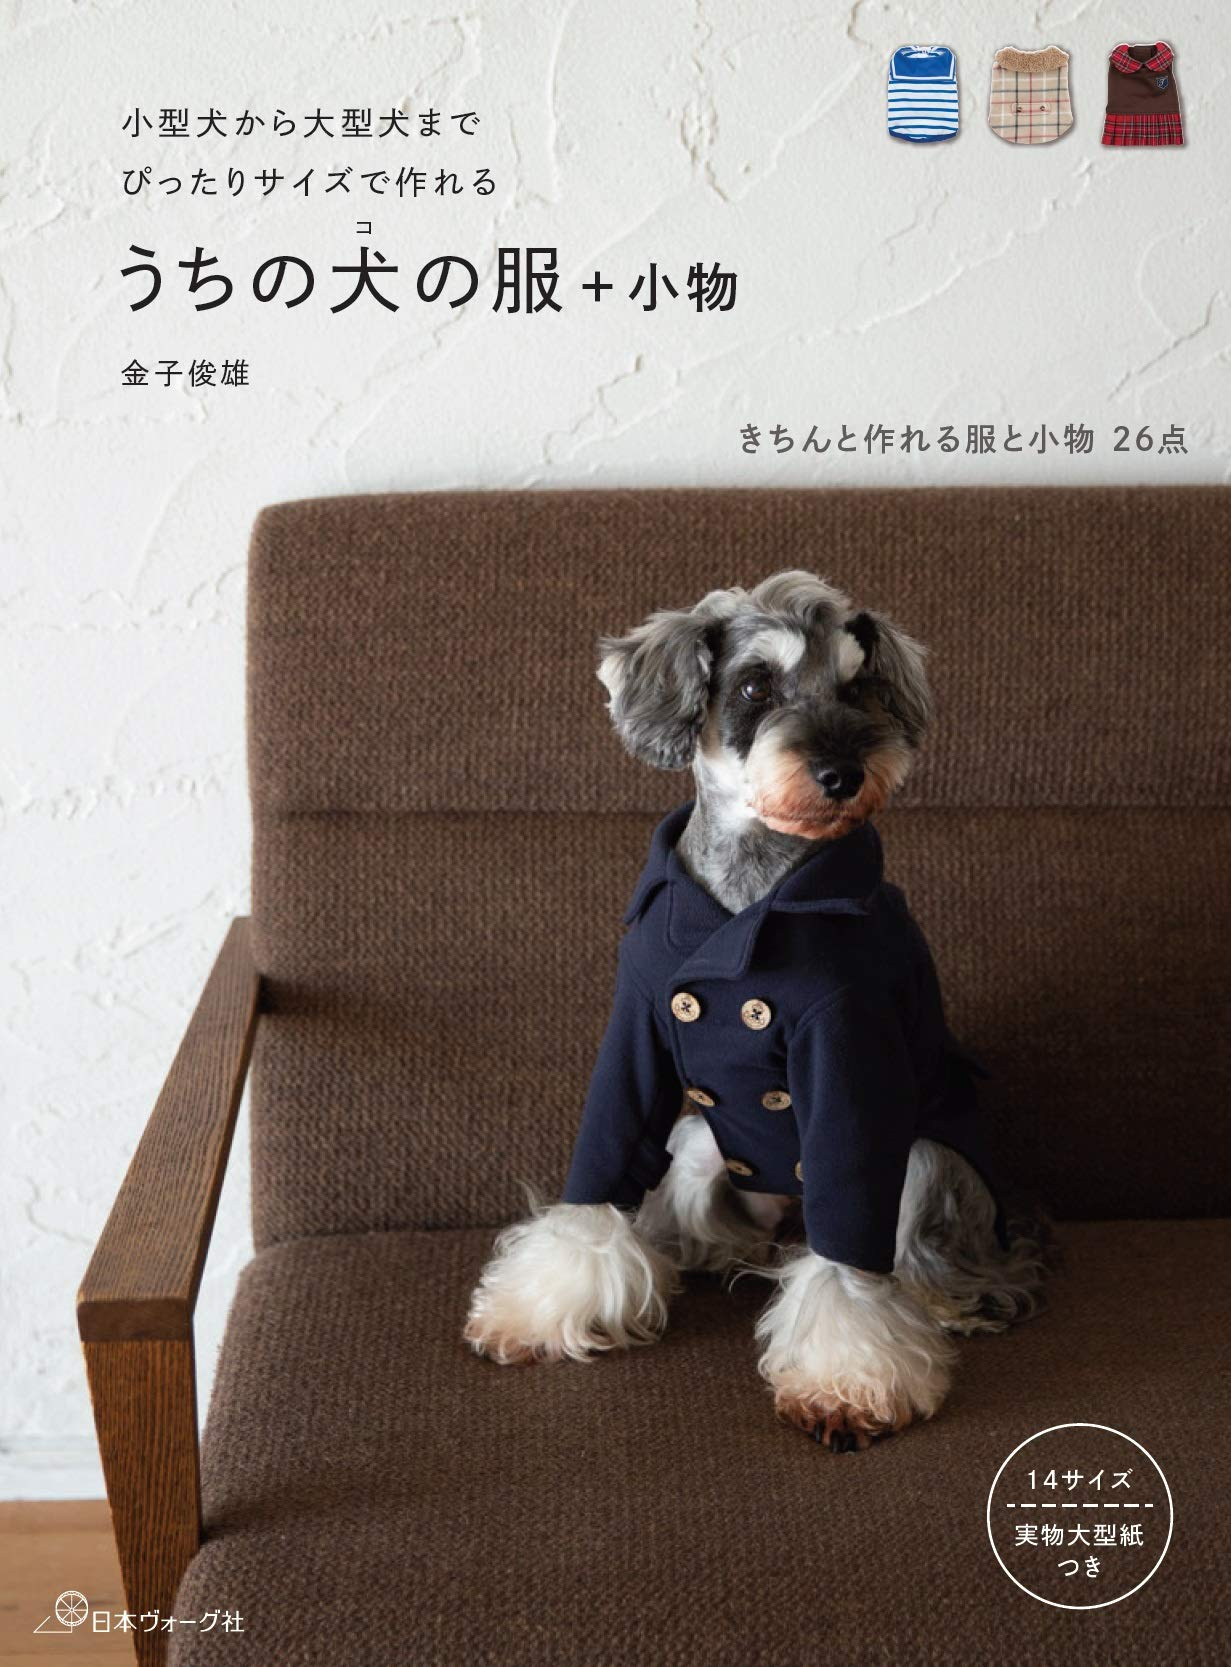 Dog clothes + small articles for dogs